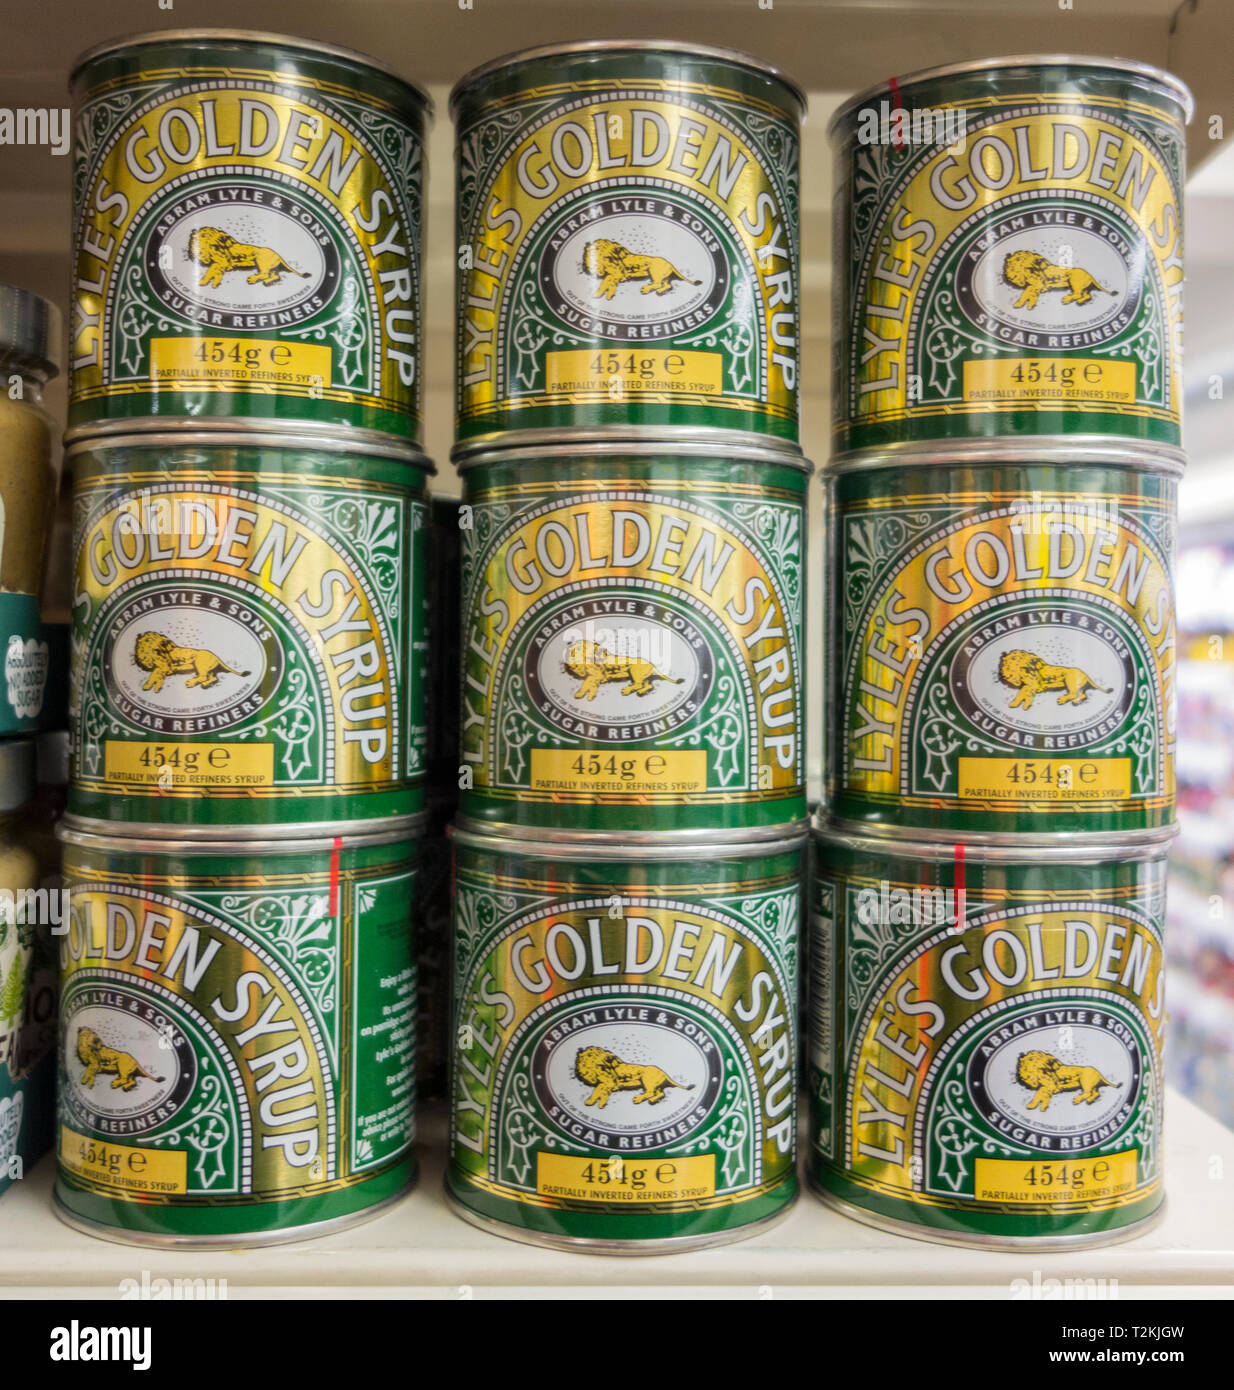 Tins of Lyle's Golden Syrup stacked on a supermarket shelf in London, UK - Stock Image